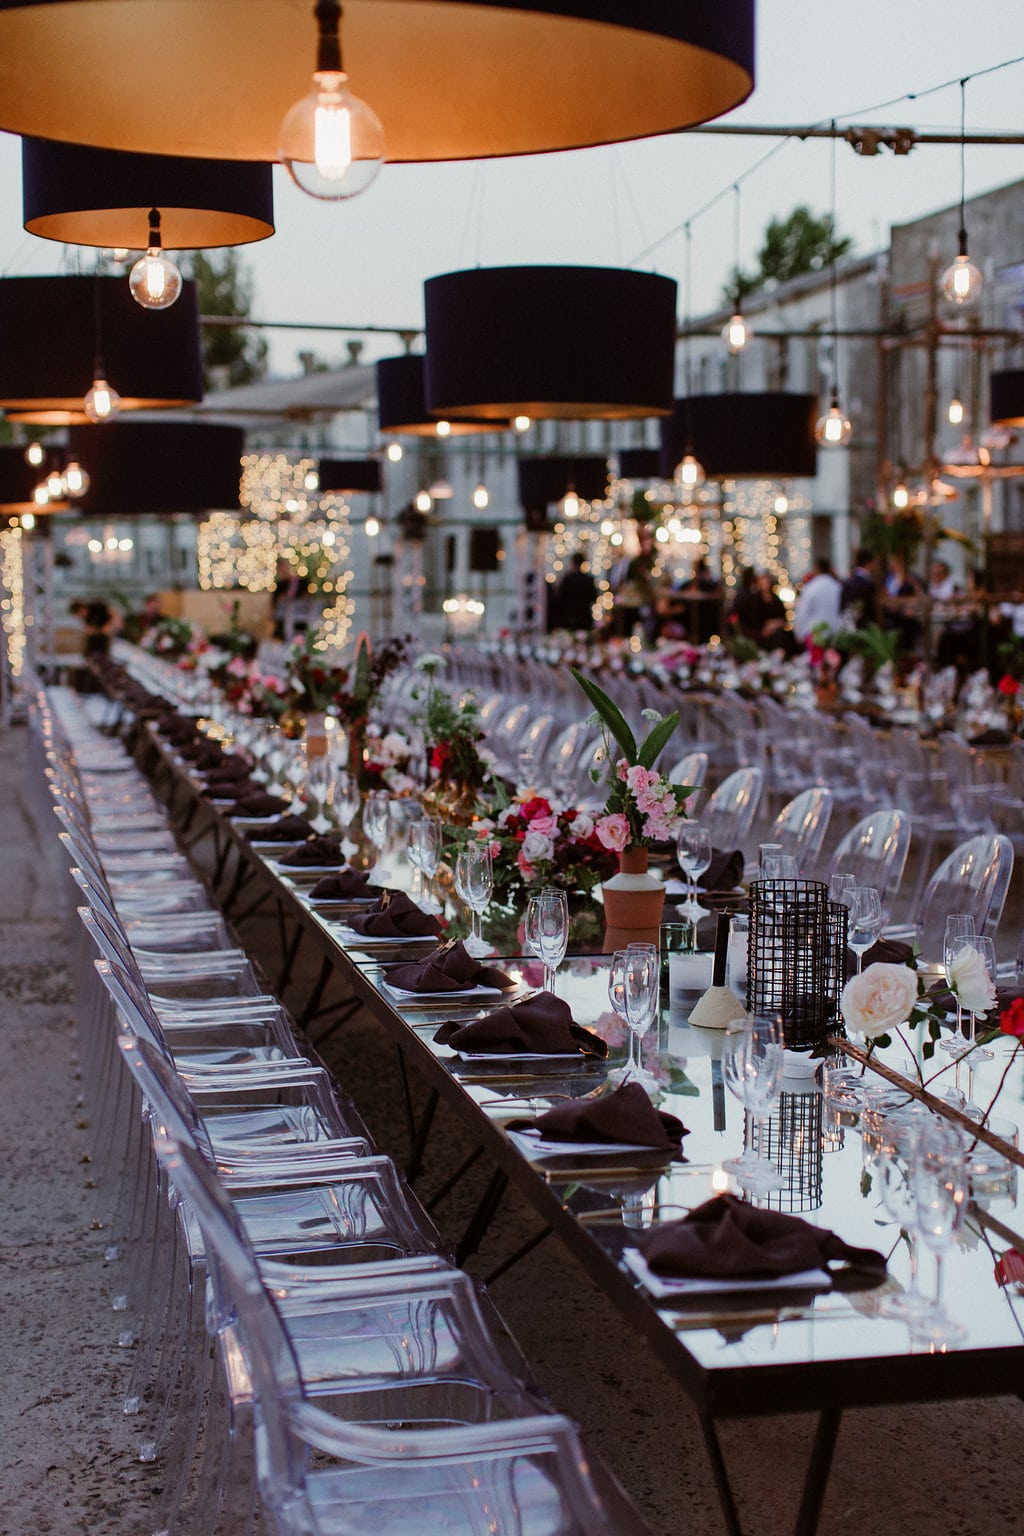 Long Glass Tables with Ghost Chairs and Hanging Lights | Image: Jenni Elizabeth